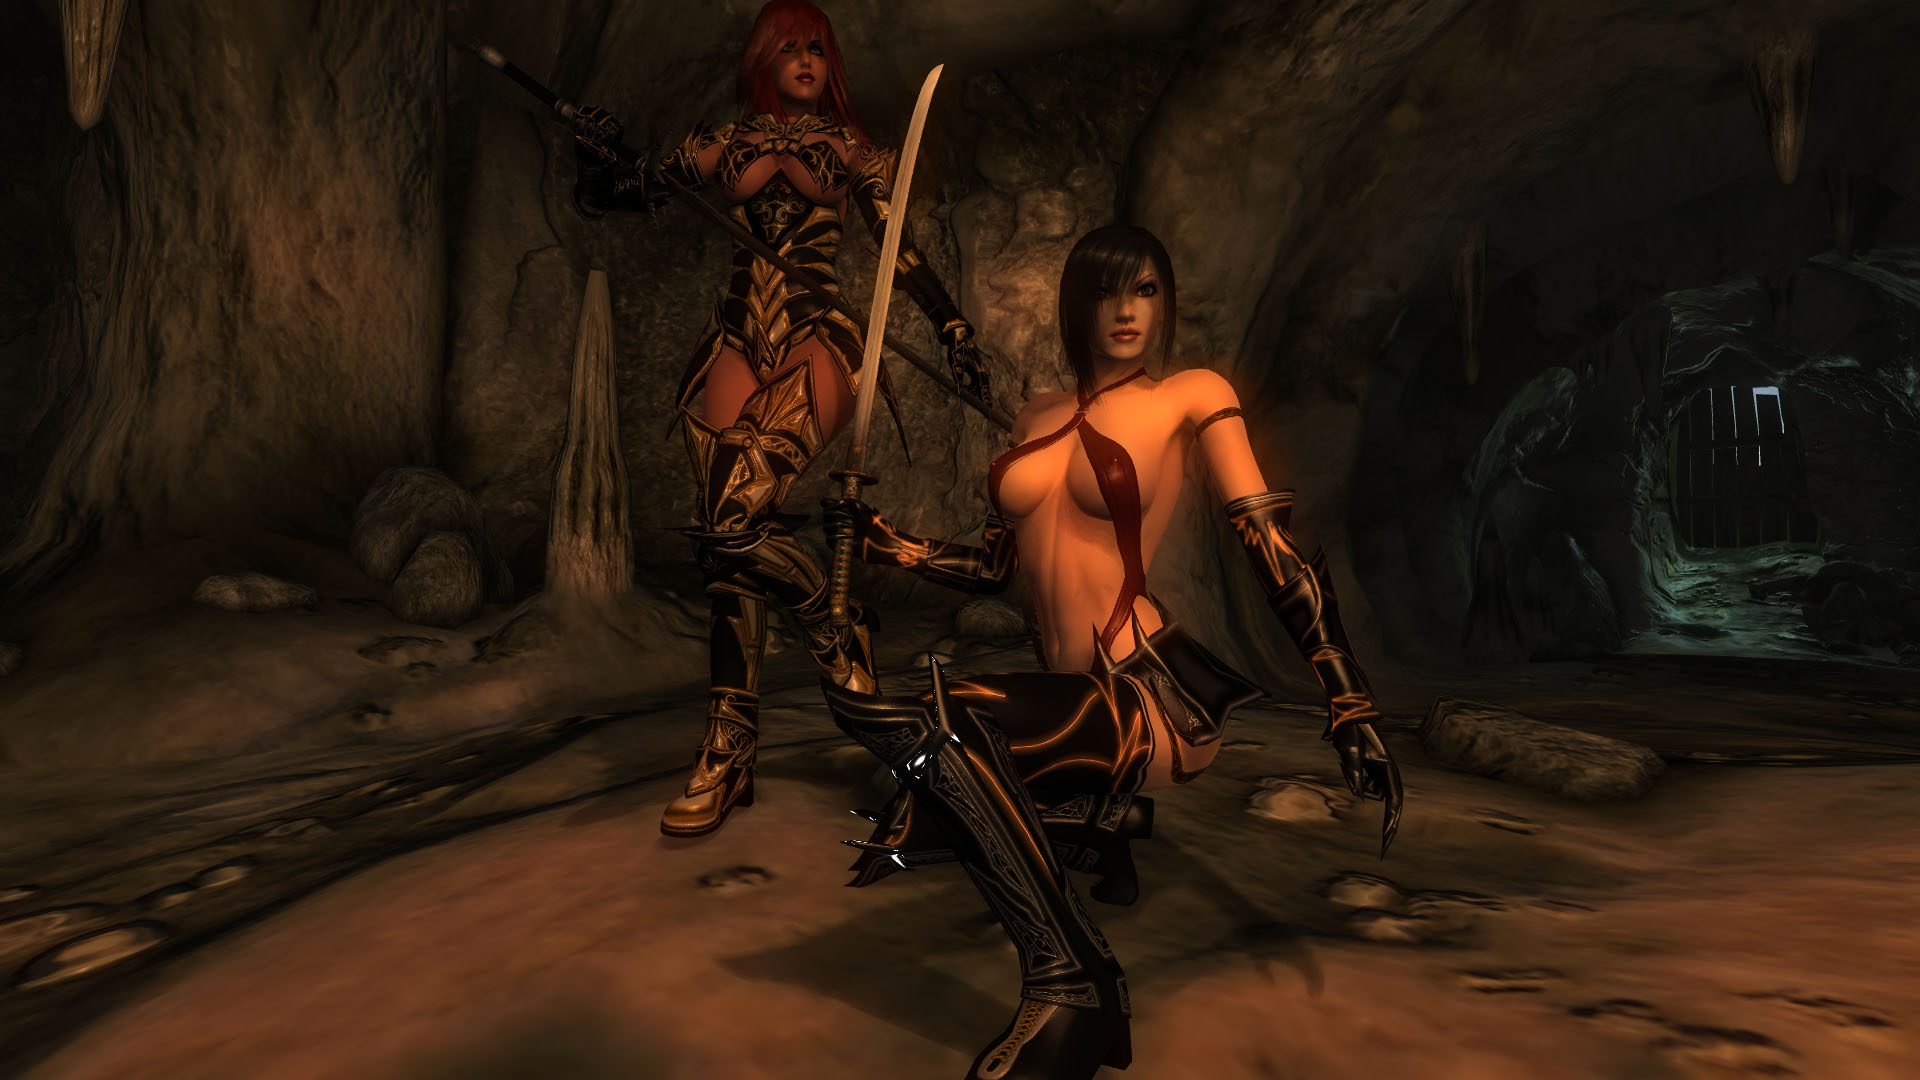 Oblivion adult mod youtube fucked photo